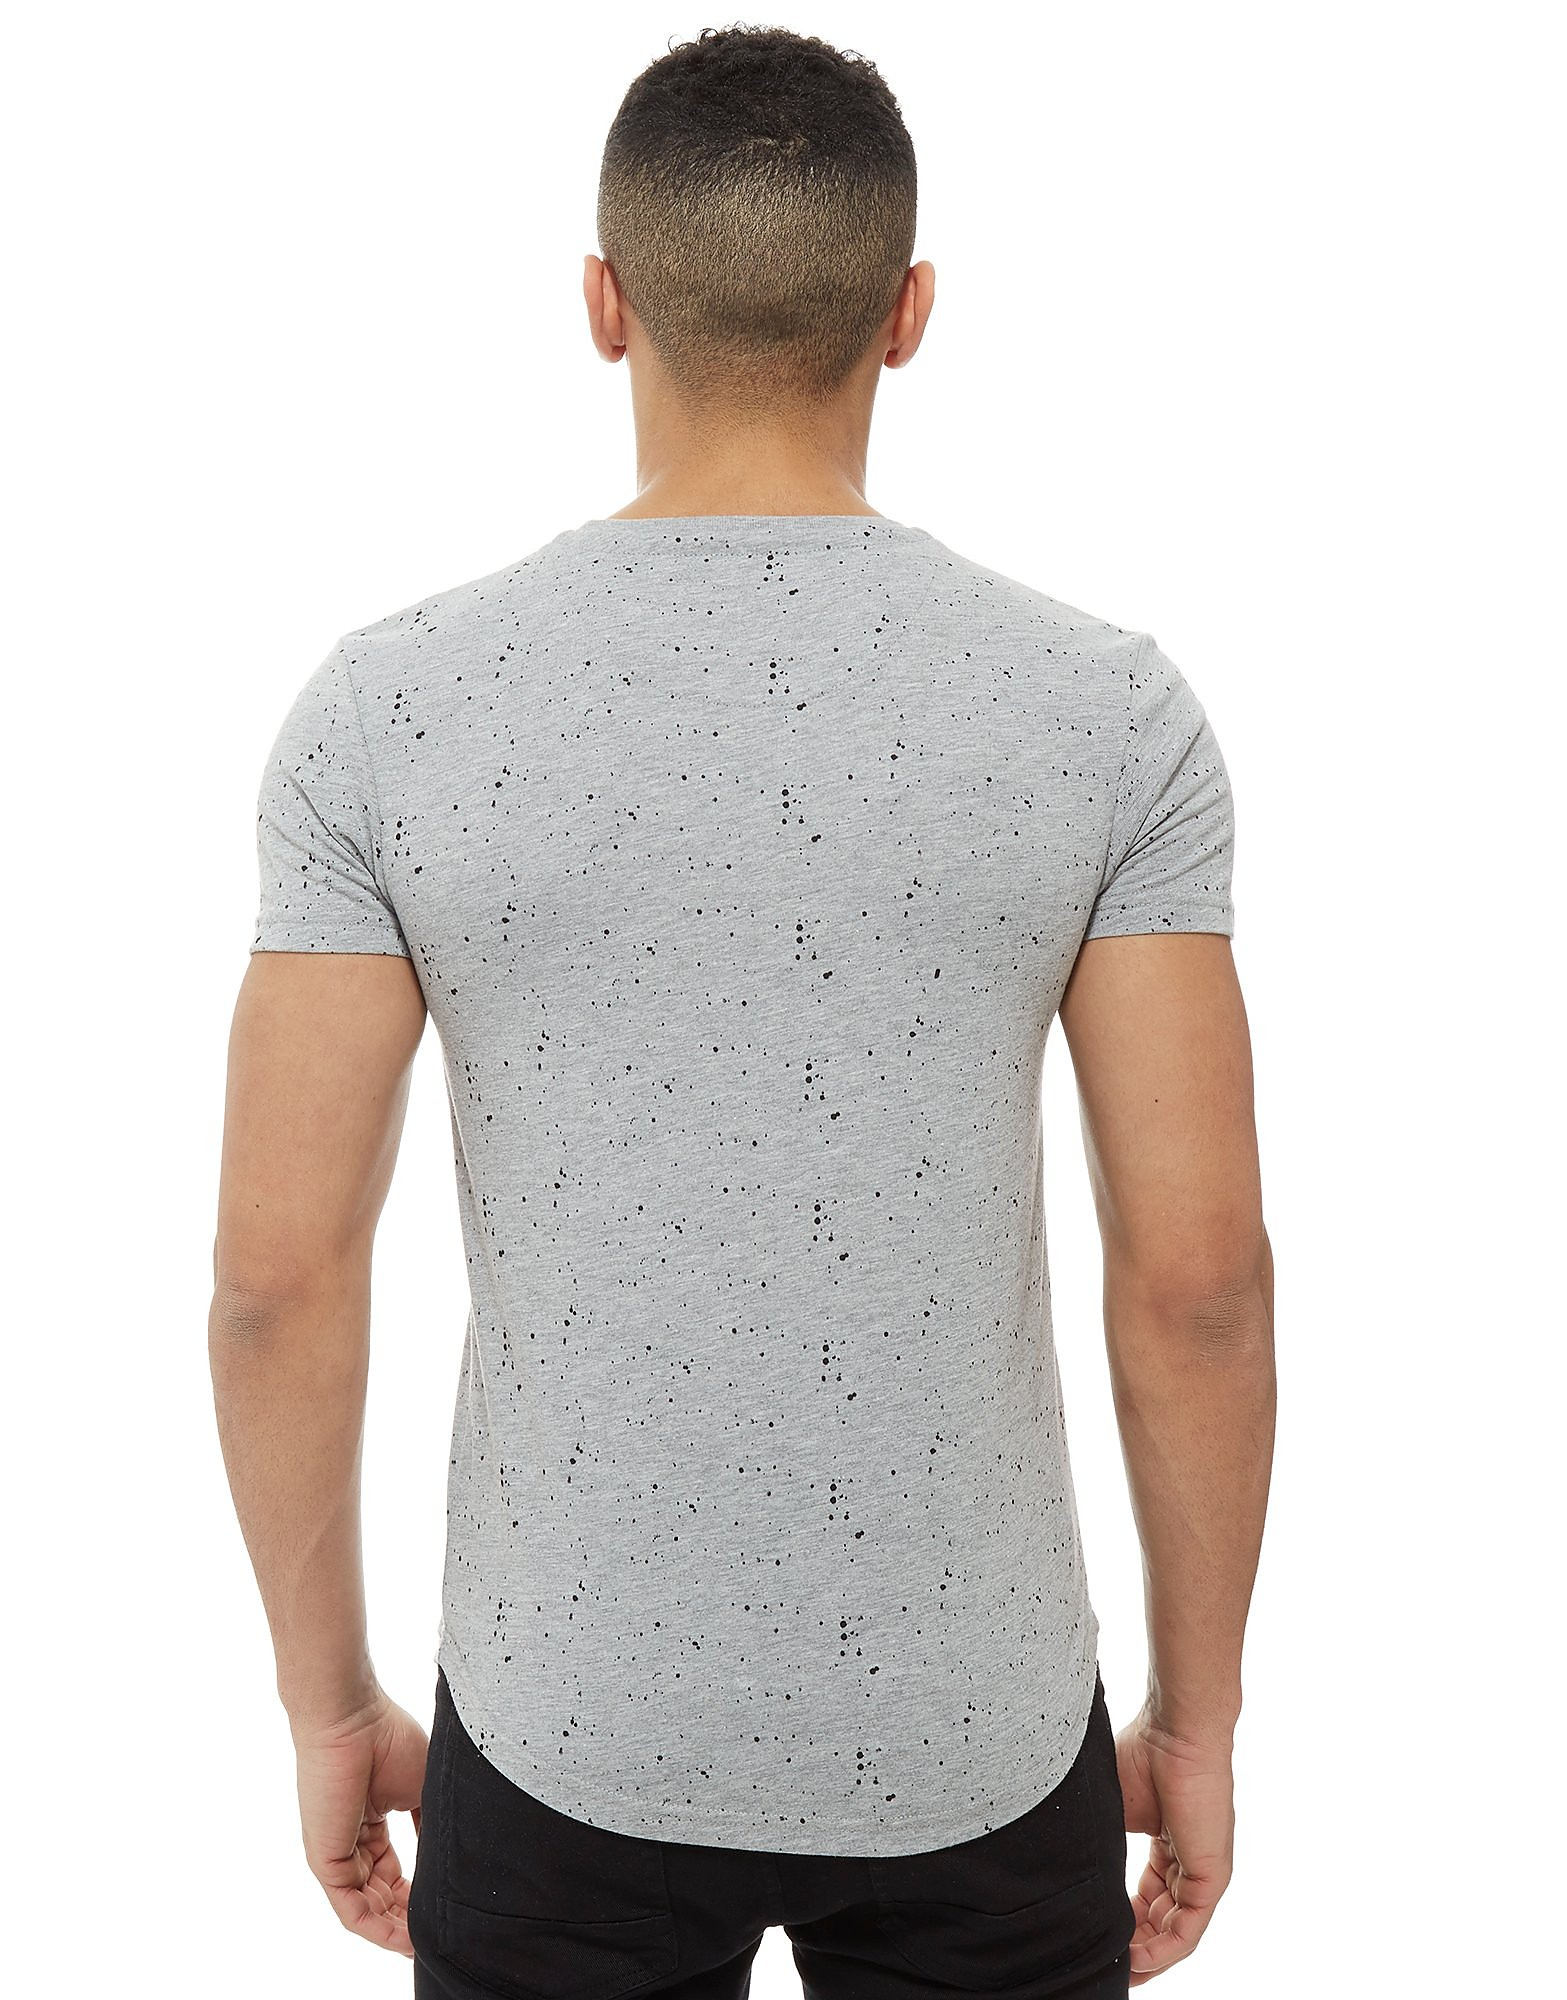 Nanny State Speckle T-Shirt